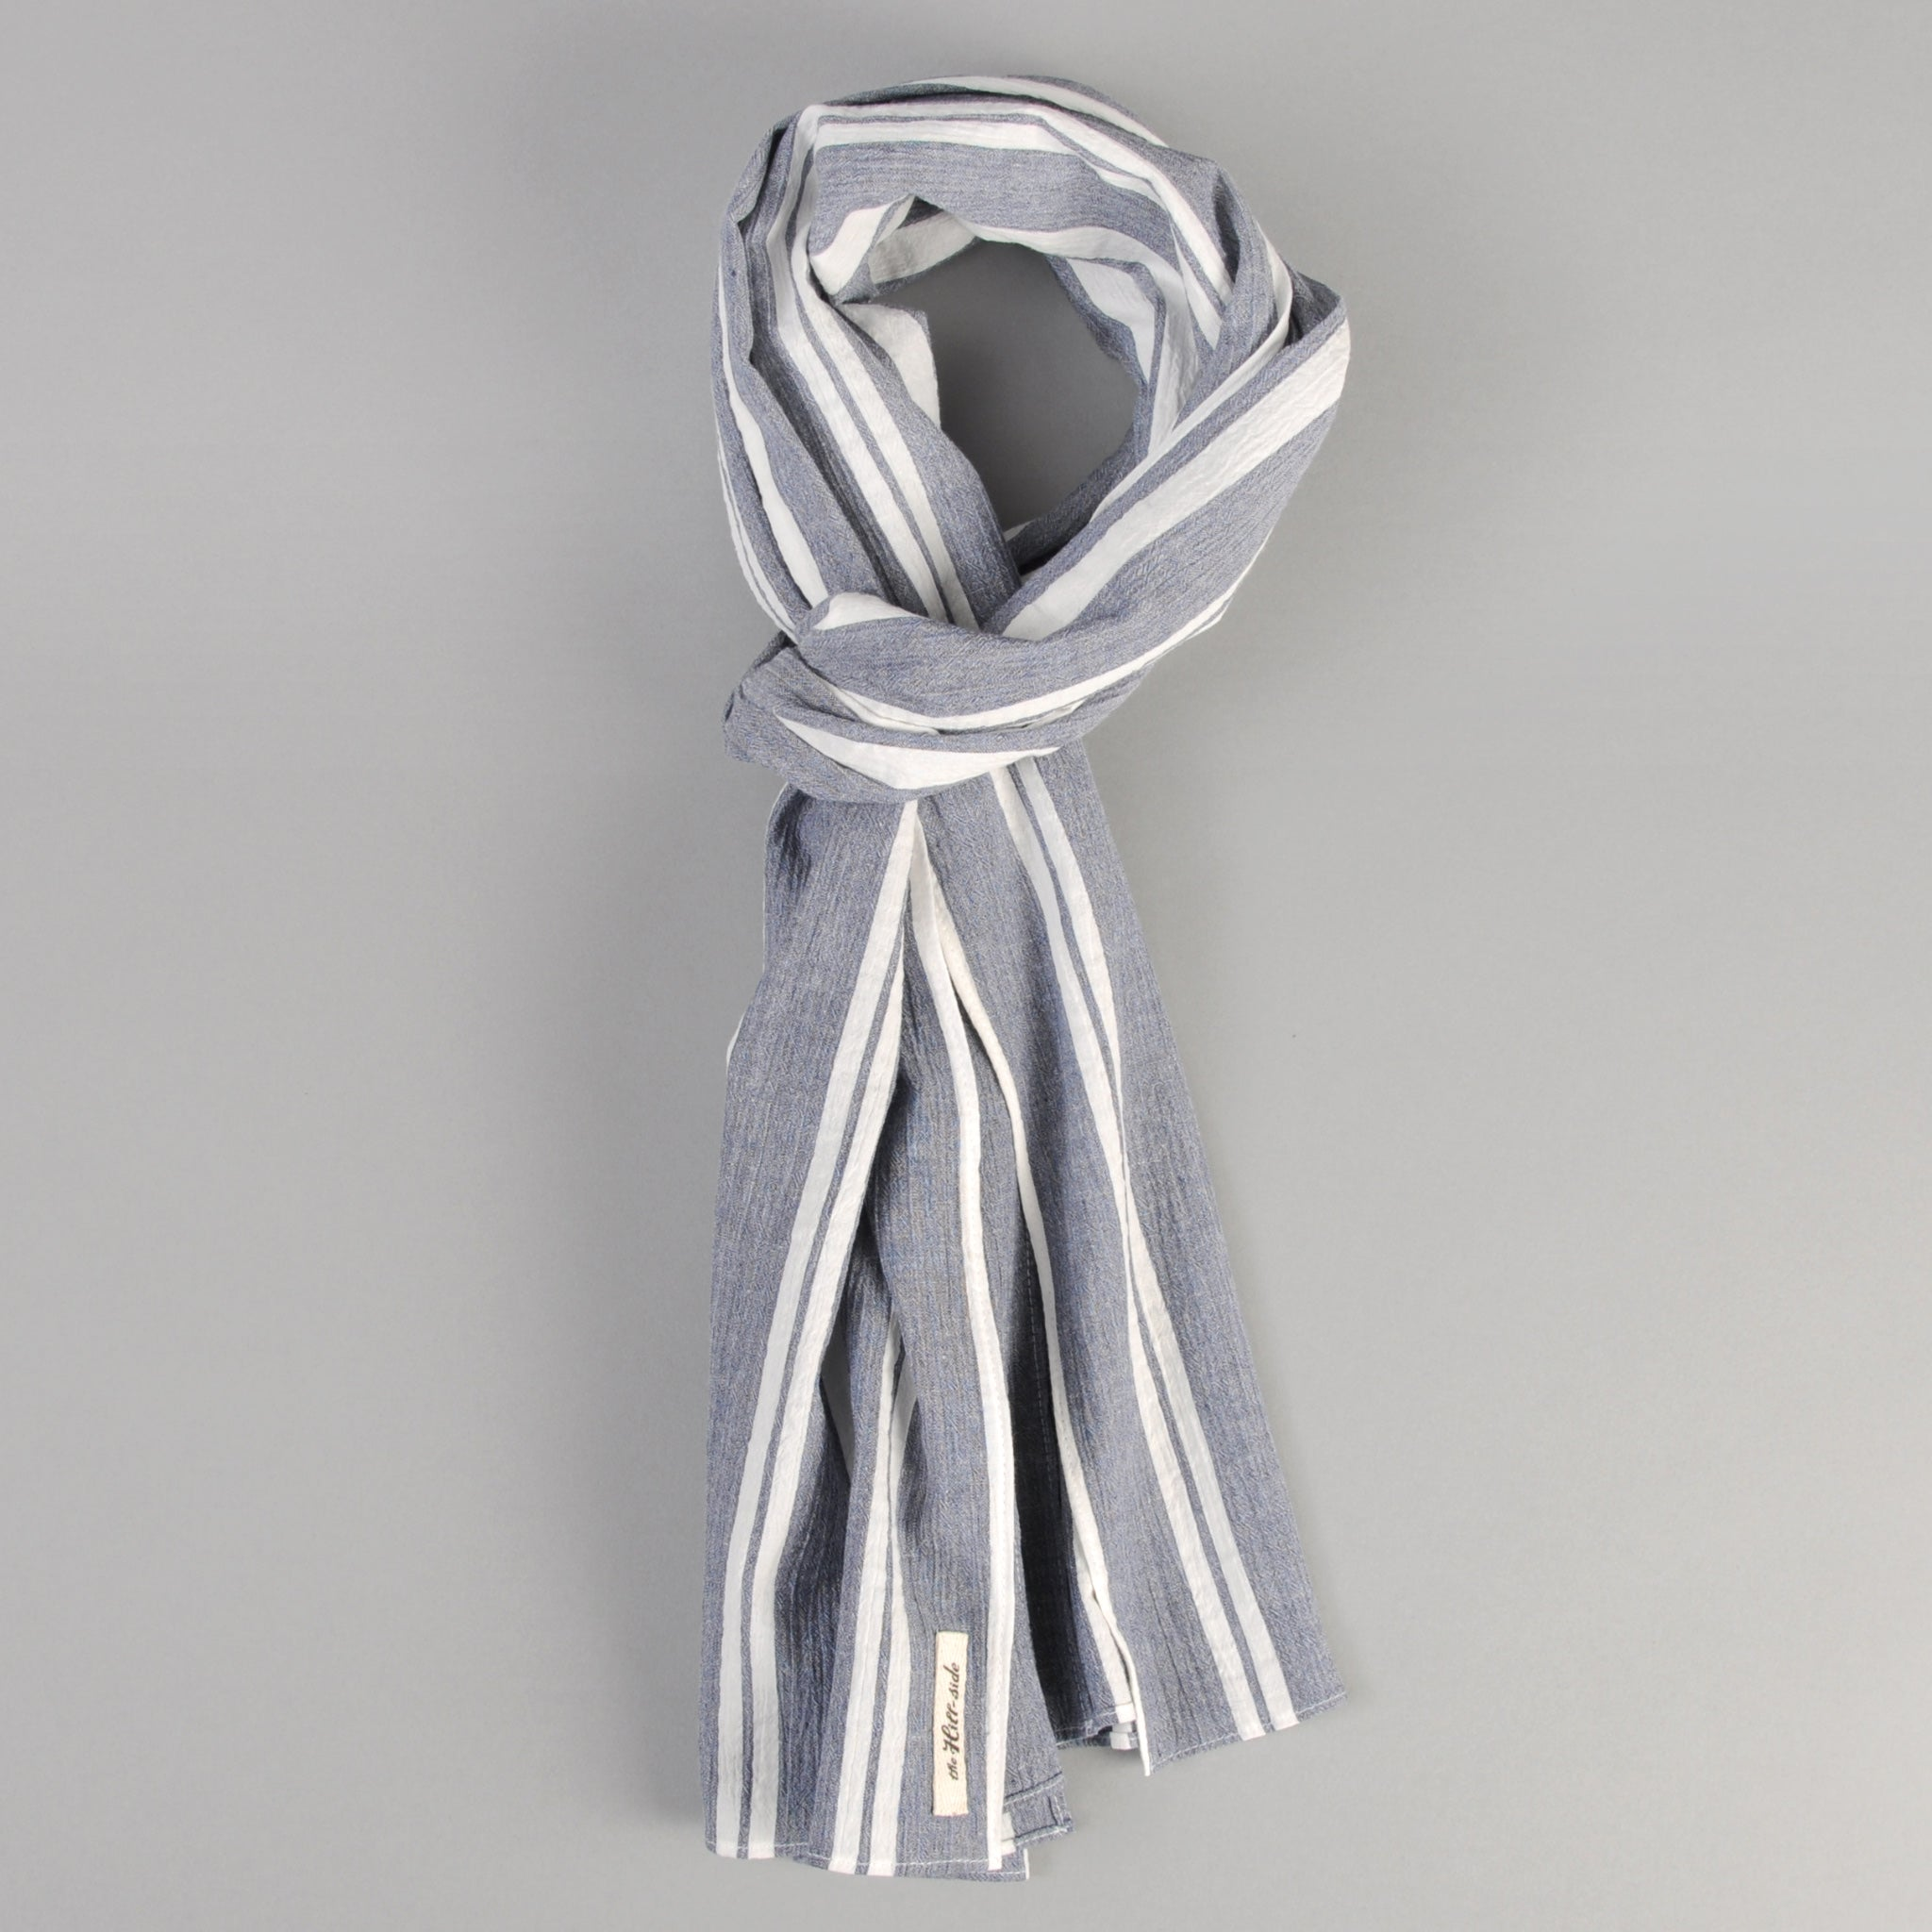 The Hill-Side - Cotton/Linen Crepe Stripe Scarf, Blue & White - SC1-429 - image 1